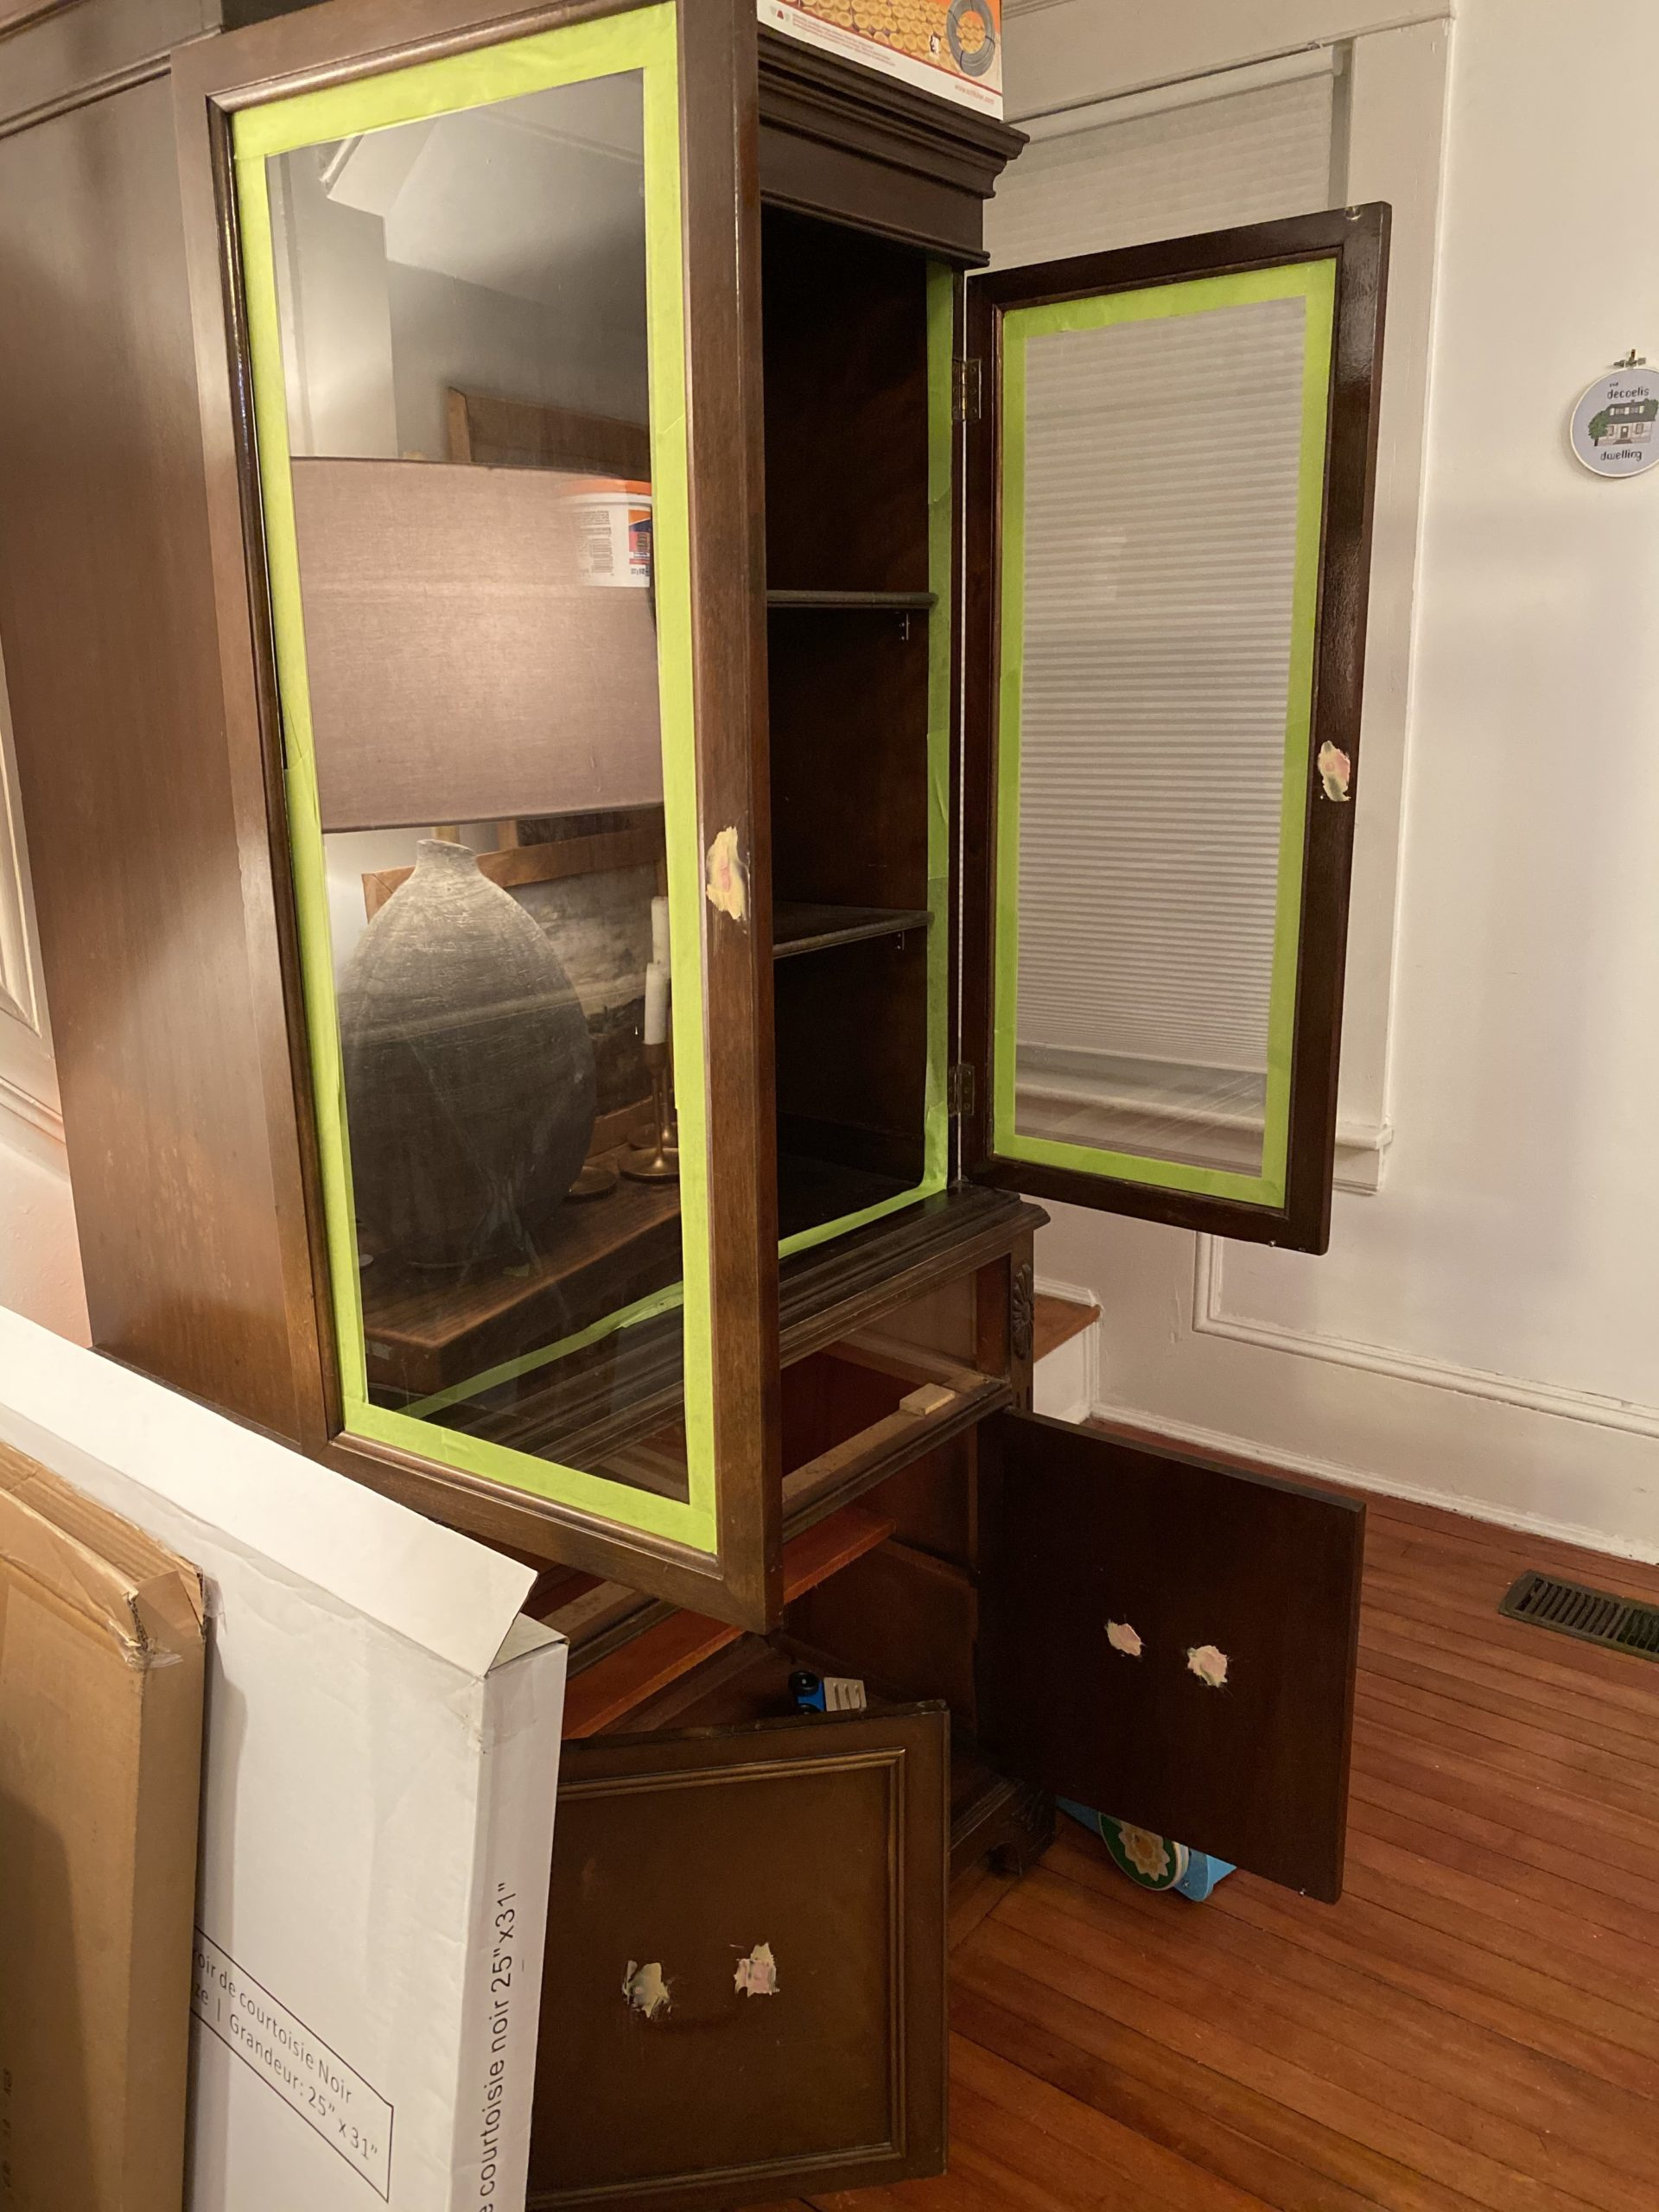 How to Refinish a China Cabinet For a Bathroom   the wild decoelis   matte black antique medicine cabinet with white grey interior in bathroom for storage with baskets and towels black clawfoot tub, vintage rug